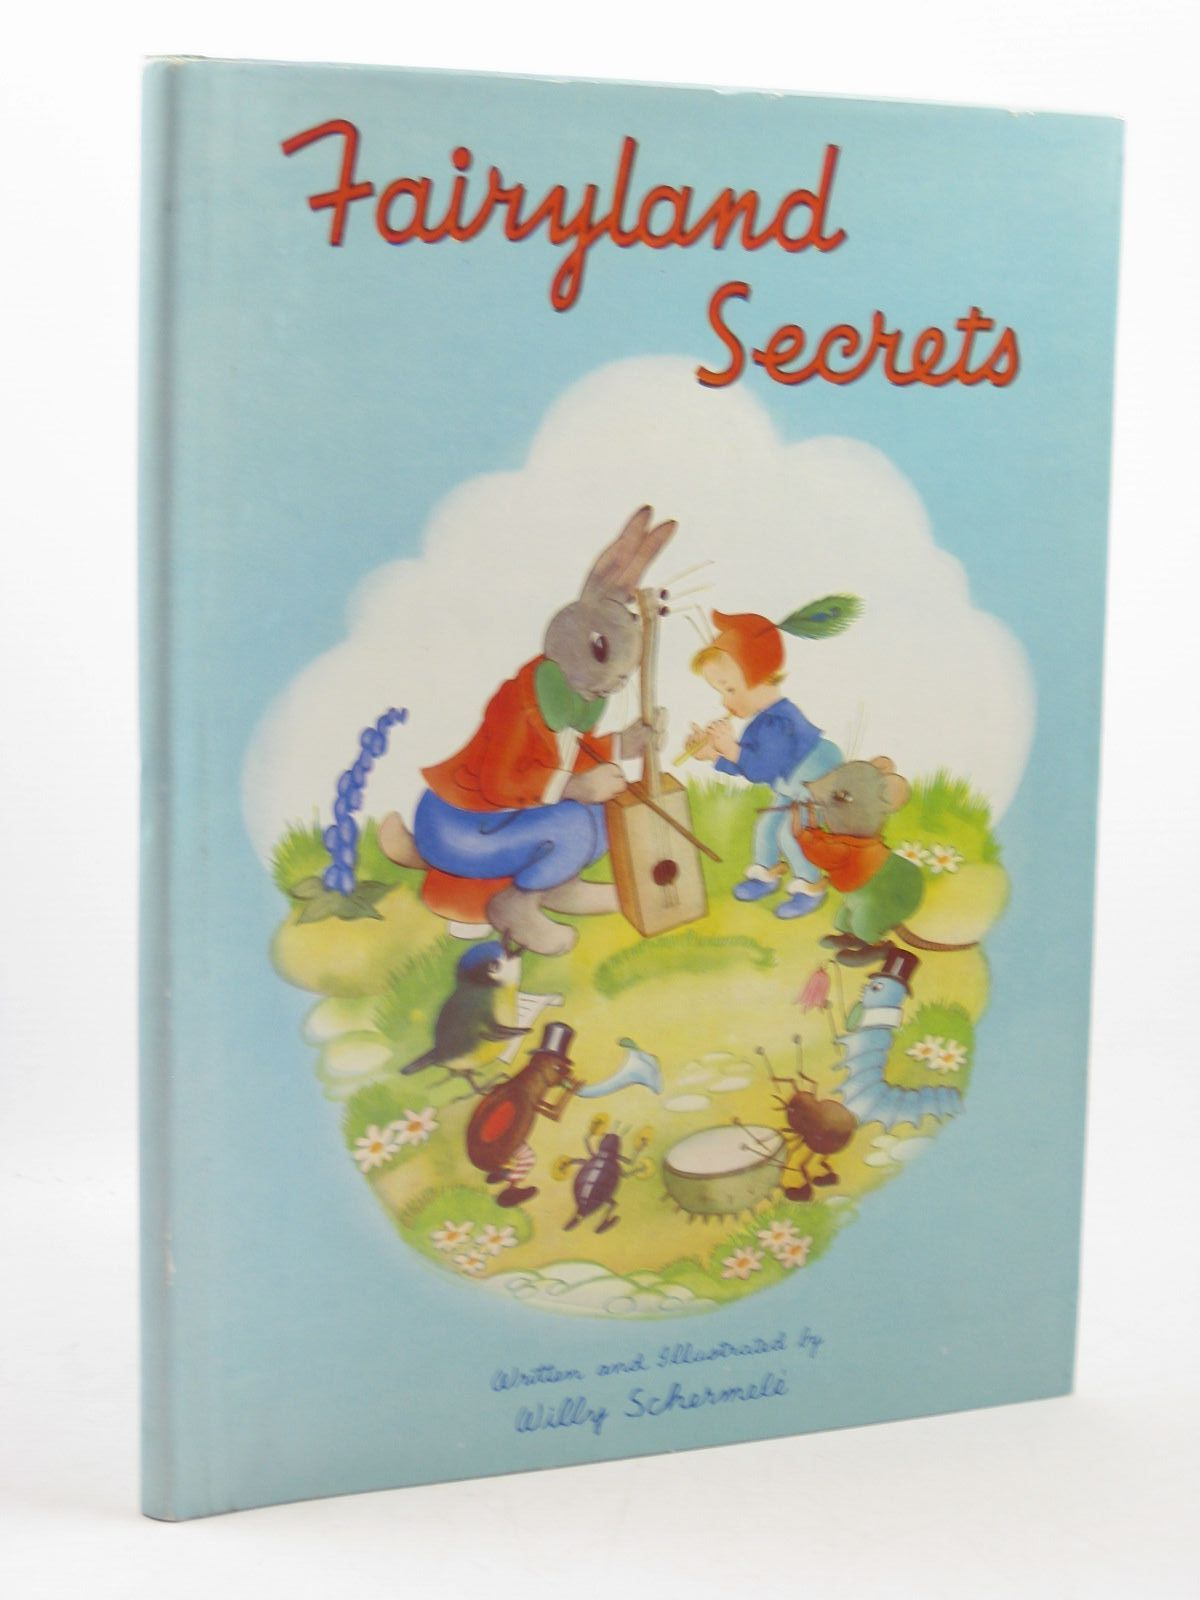 Photo of FAIRYLAND SECRETS written by Schermele, Willy illustrated by Schermele, Willy published by Juvenile Productions Ltd. (STOCK CODE: 1312707)  for sale by Stella & Rose's Books